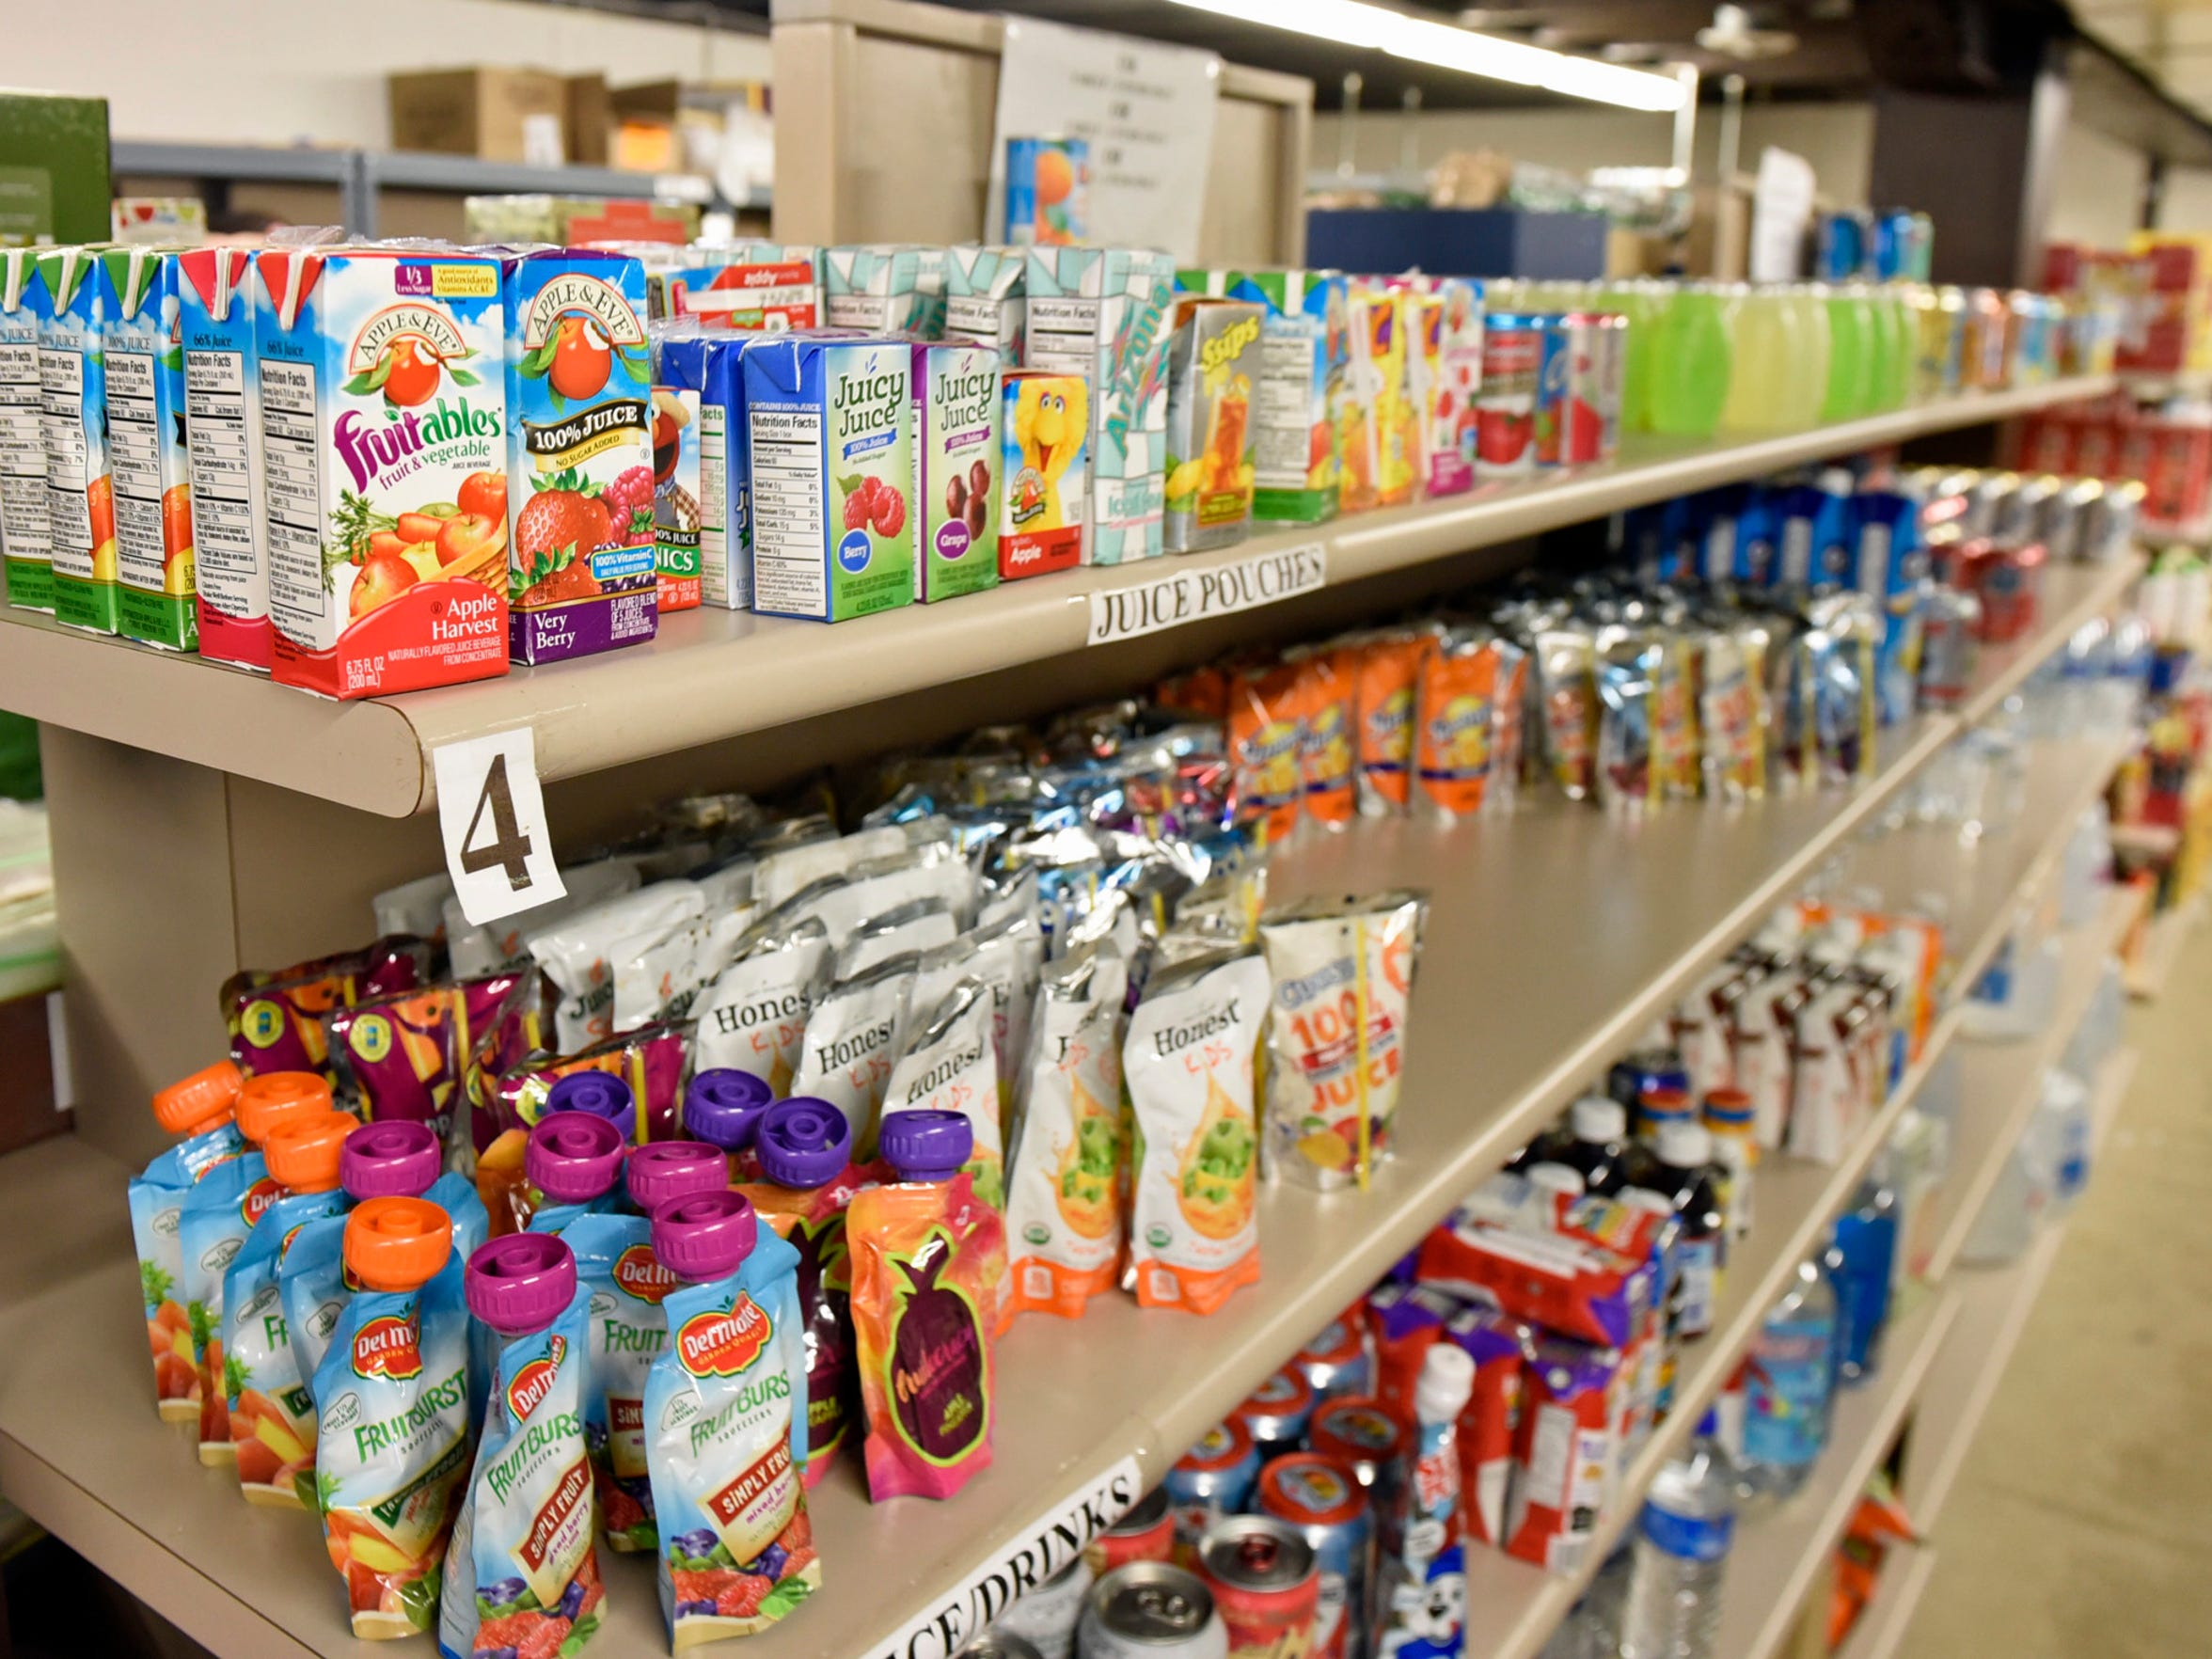 Shelves are filled with food Thursday, June 16, 2016